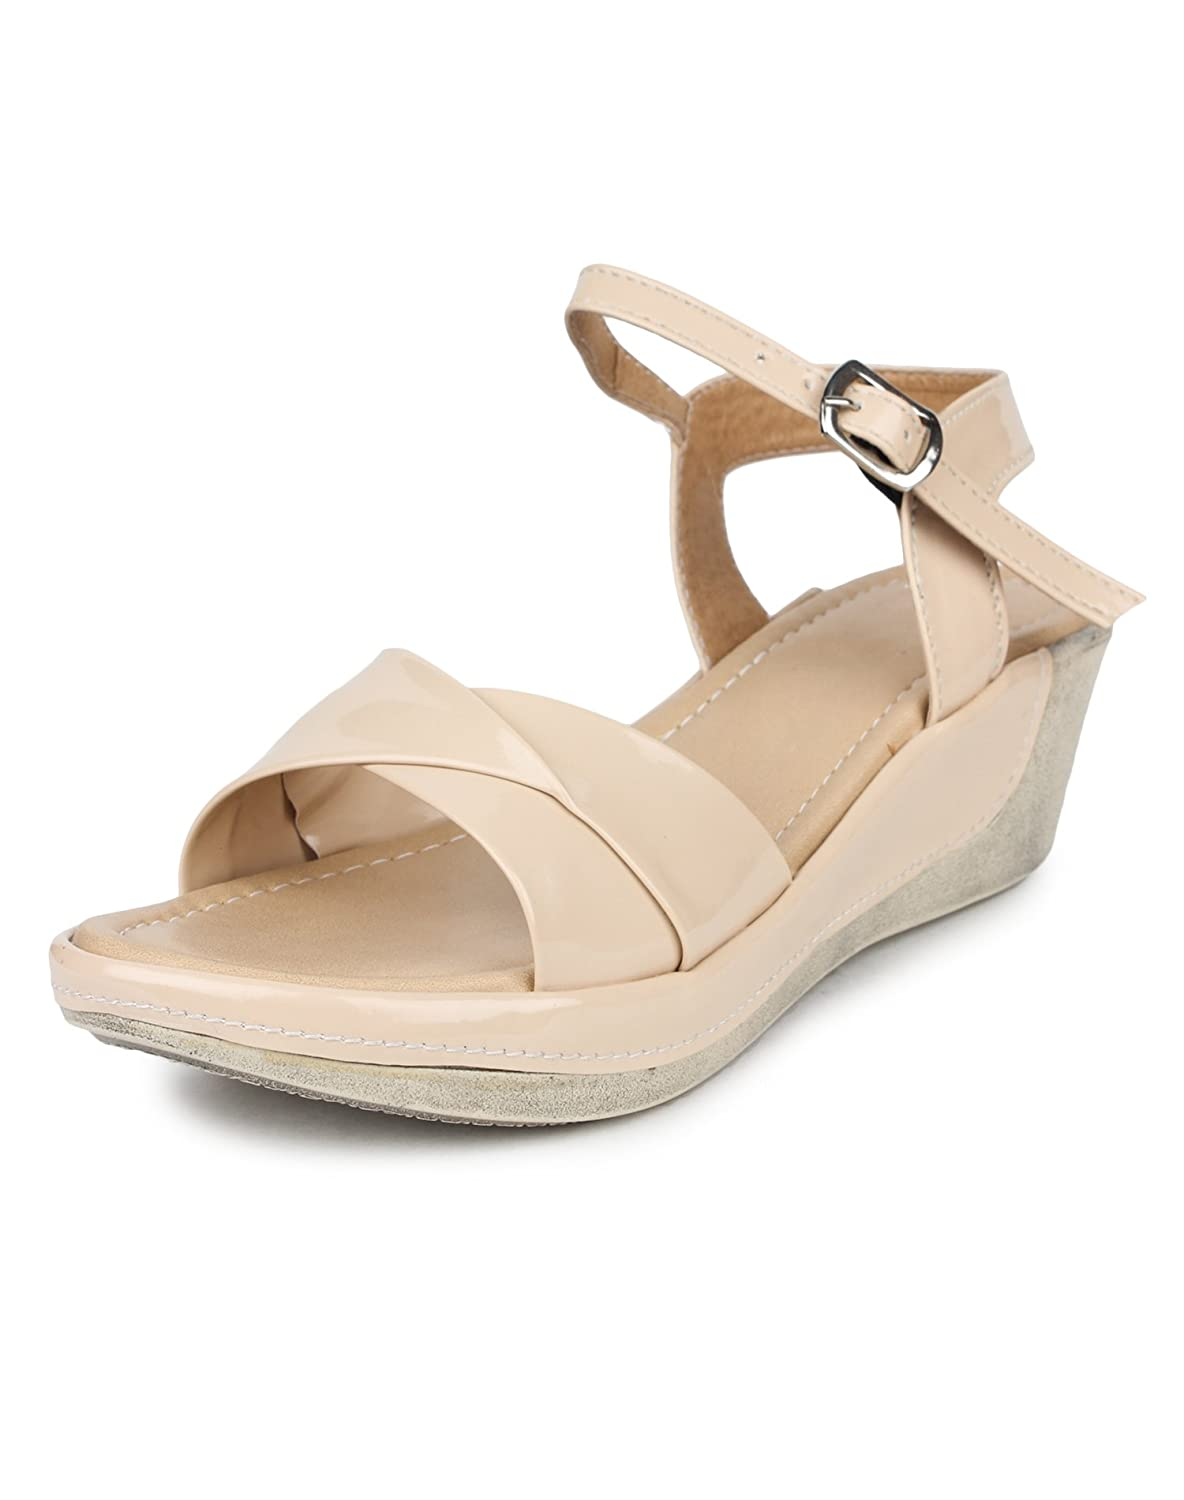 Do Bhai Women's Synthetic Wedges